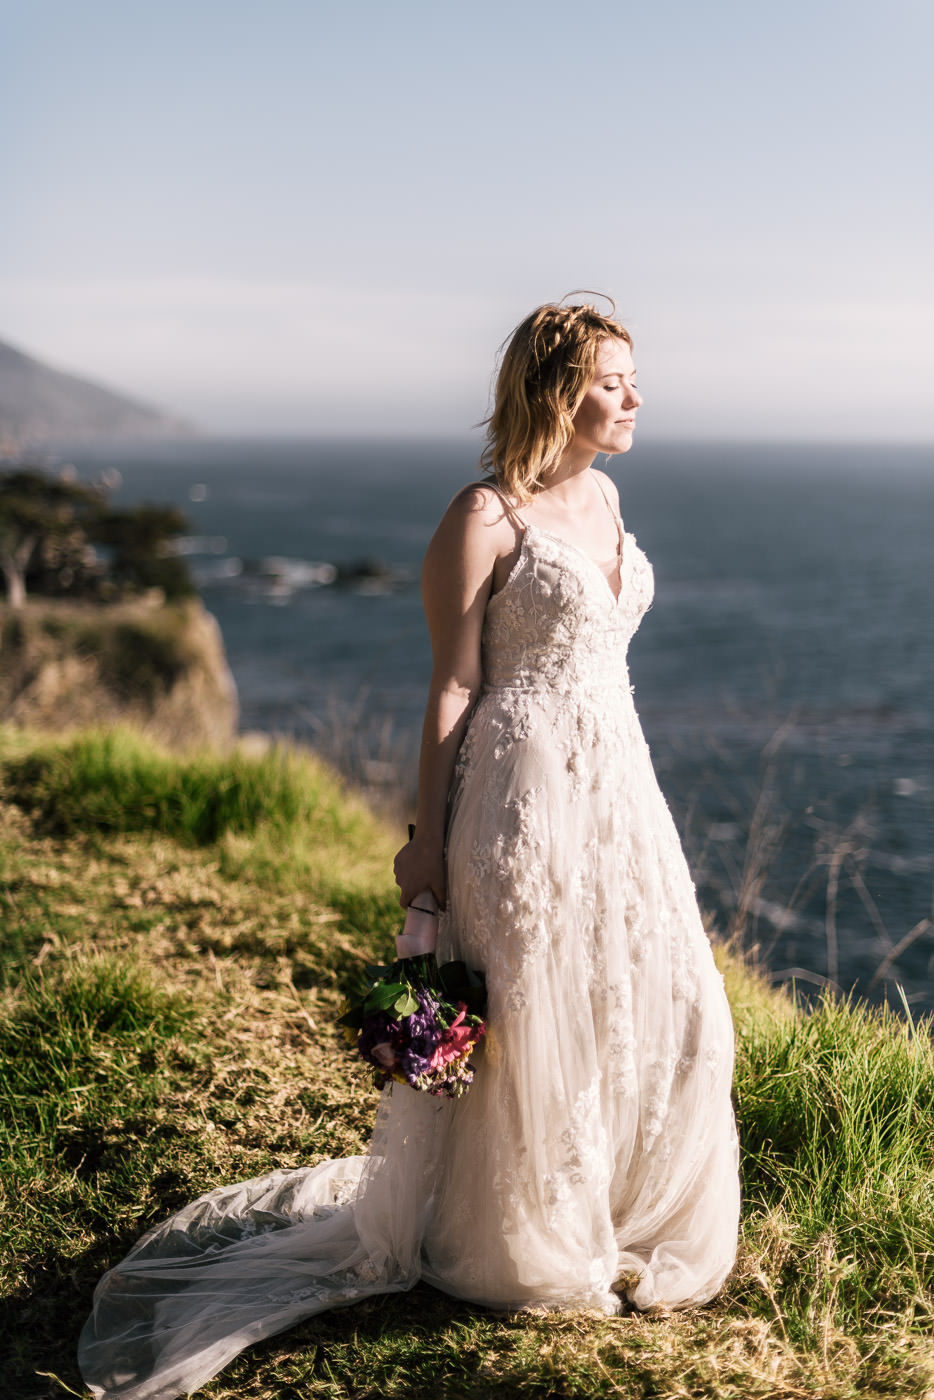 Bride stands on the cliffs of California's unforgettable coastline as the sun sets.